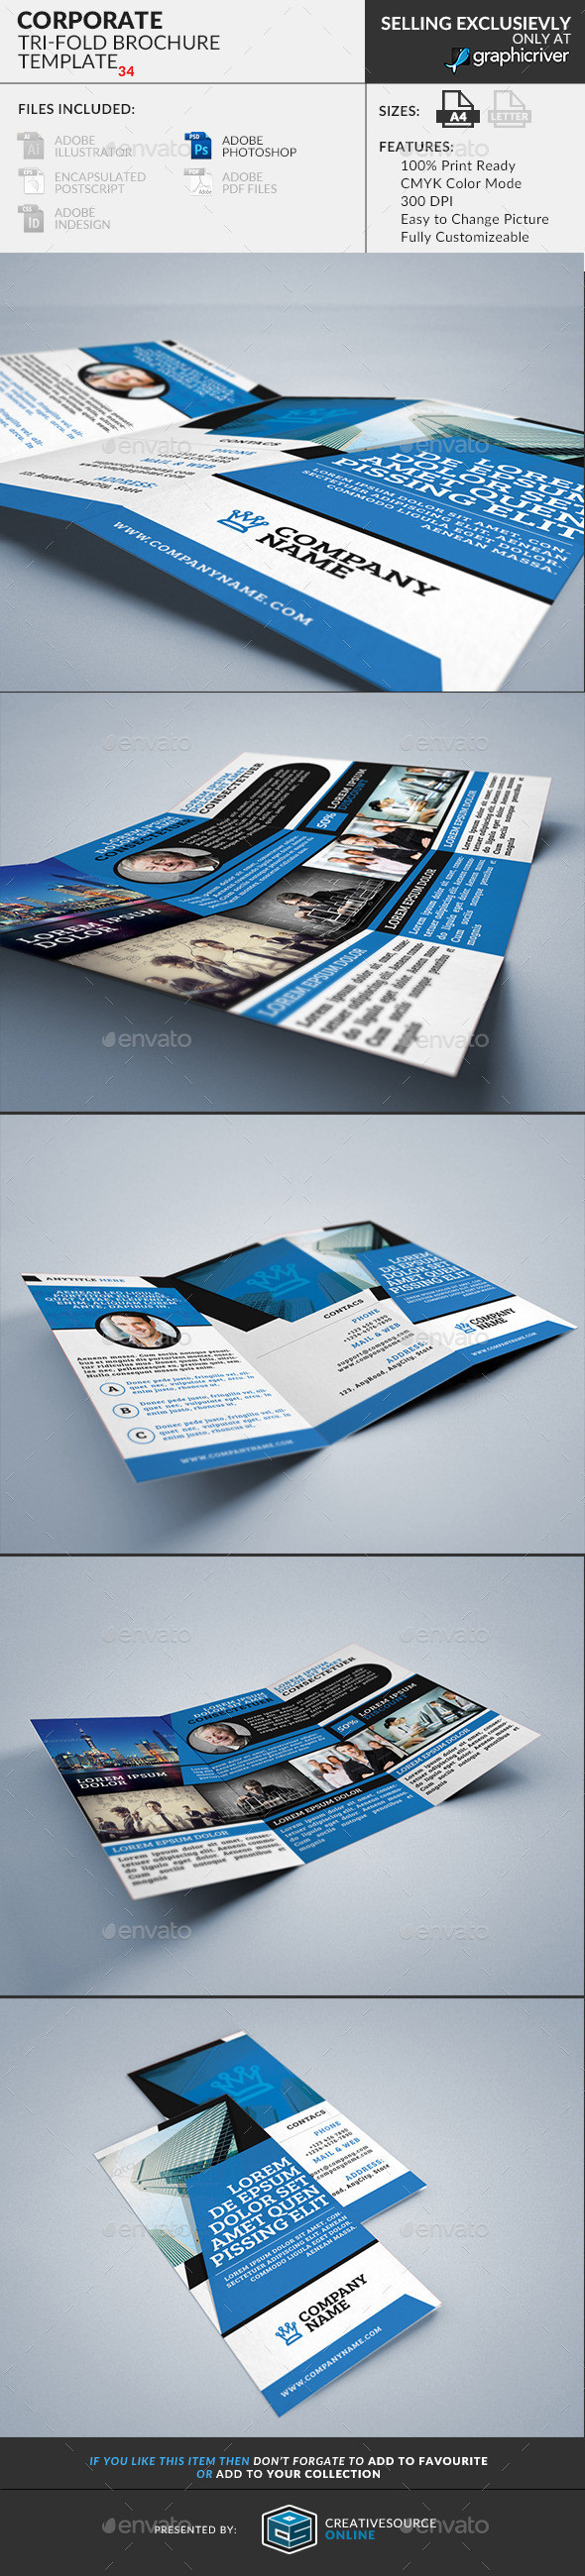 Corporate trifold brochure preview 34